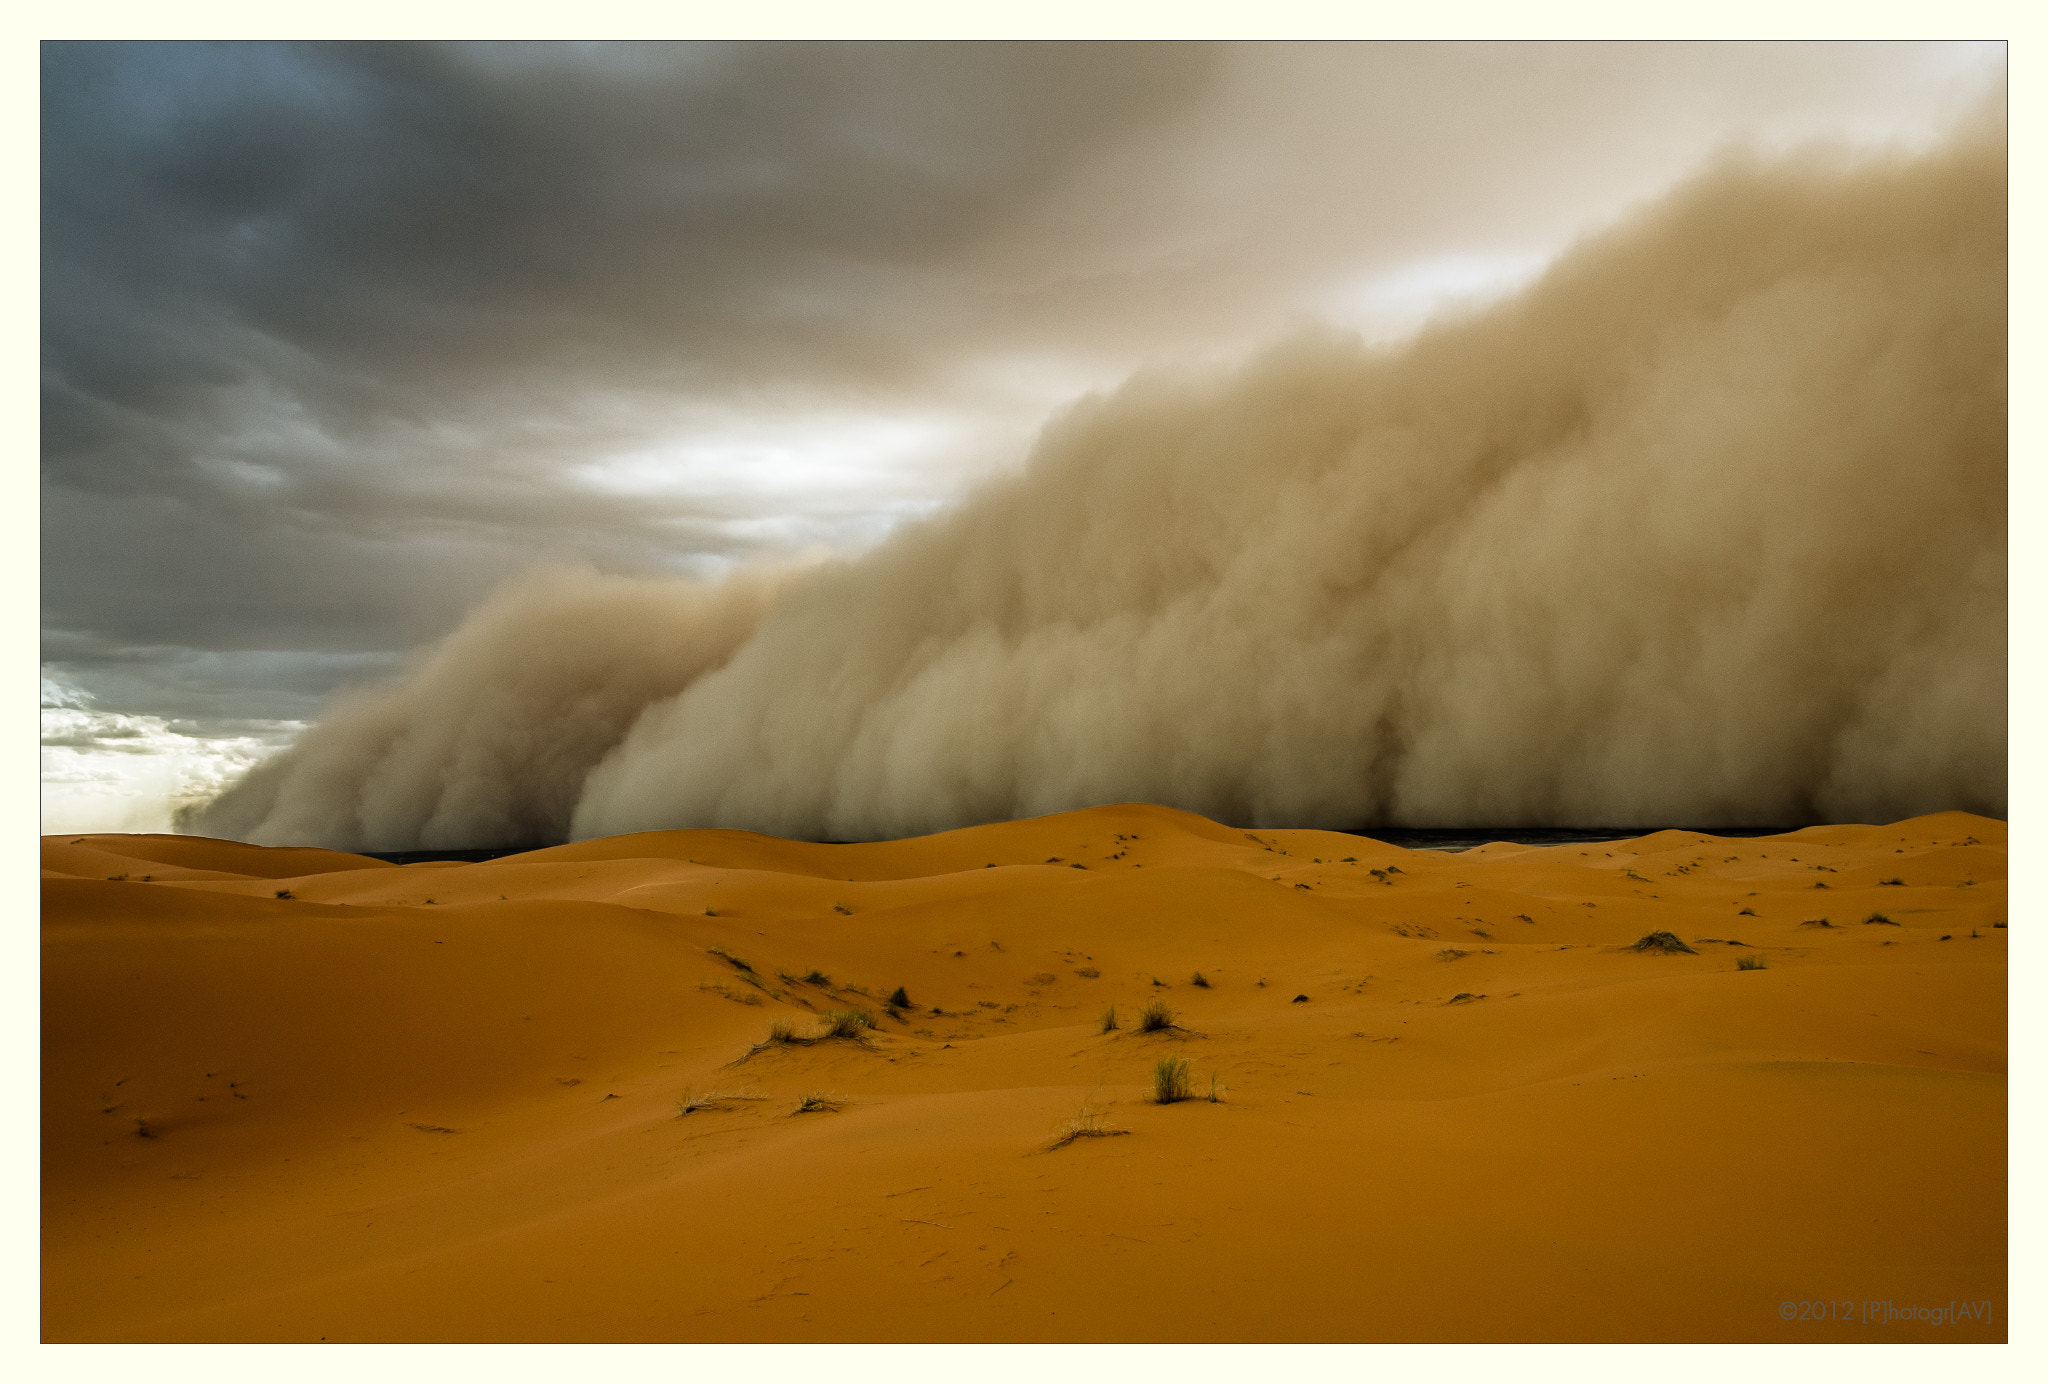 Photograph Sandstorm! by Peter Vruggink on 500px